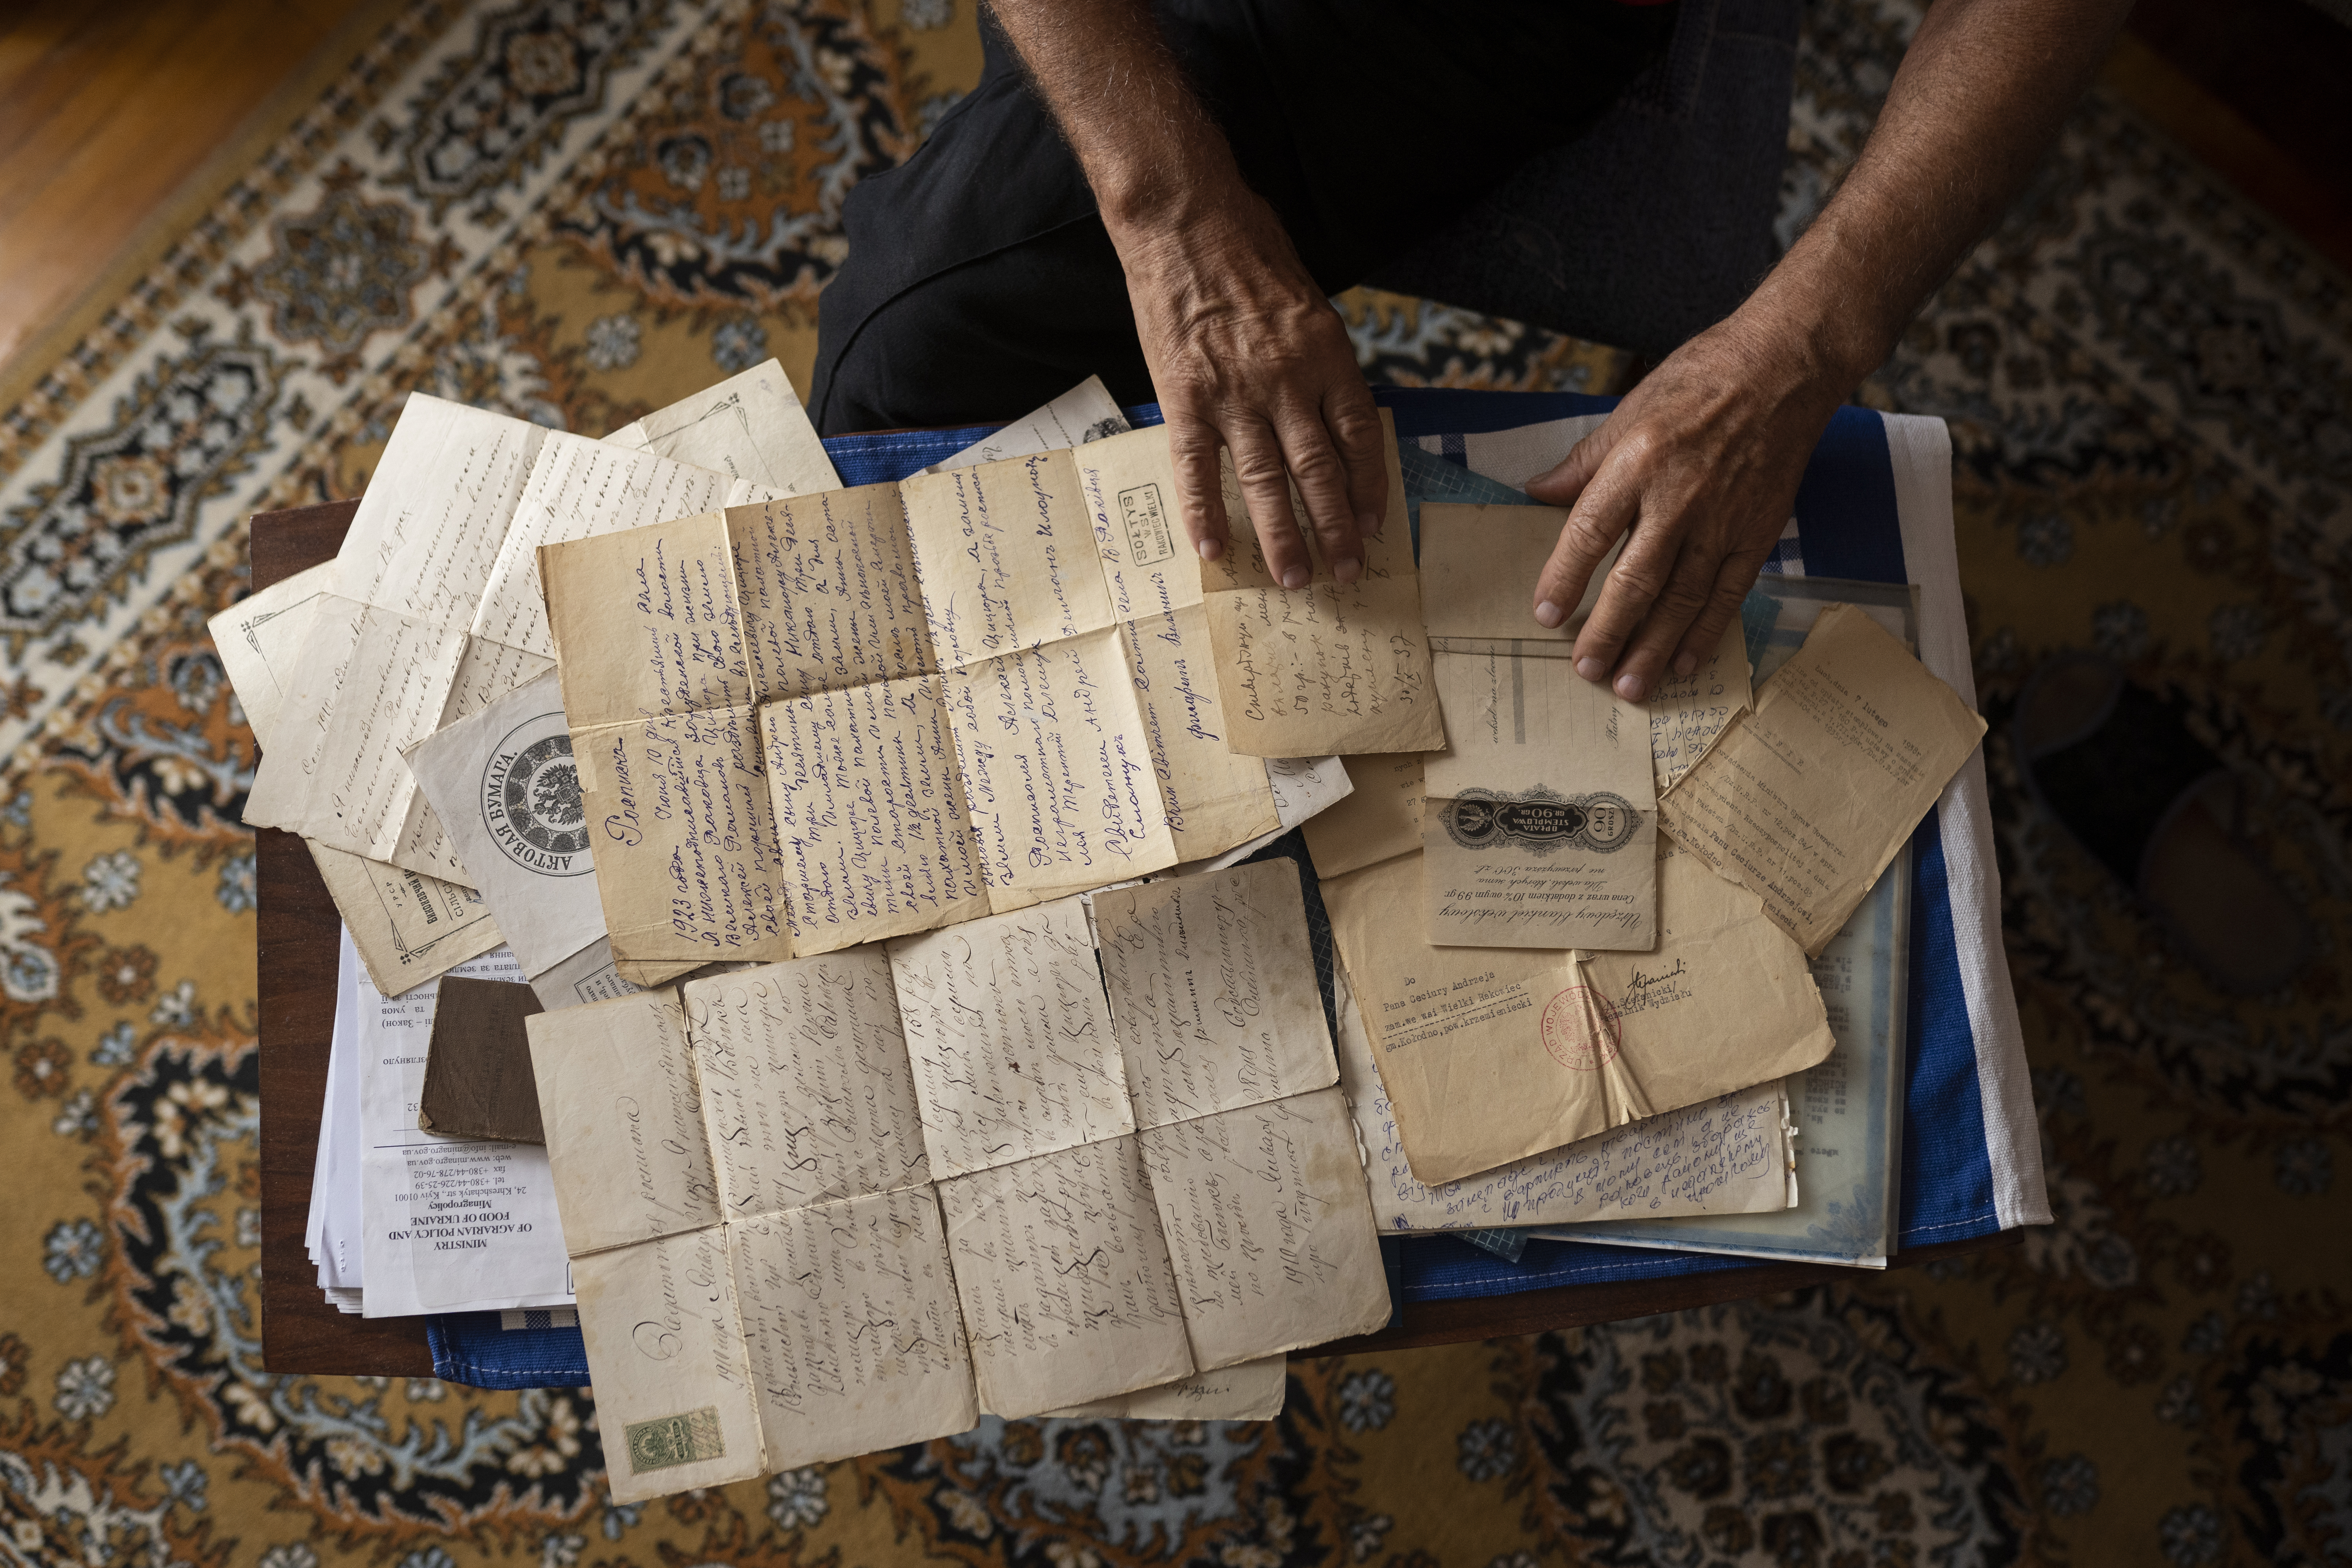 Viktor looks through personal family papers dating back to the 19th century (AtlasNetwork.org Photo/Bernat Parera).